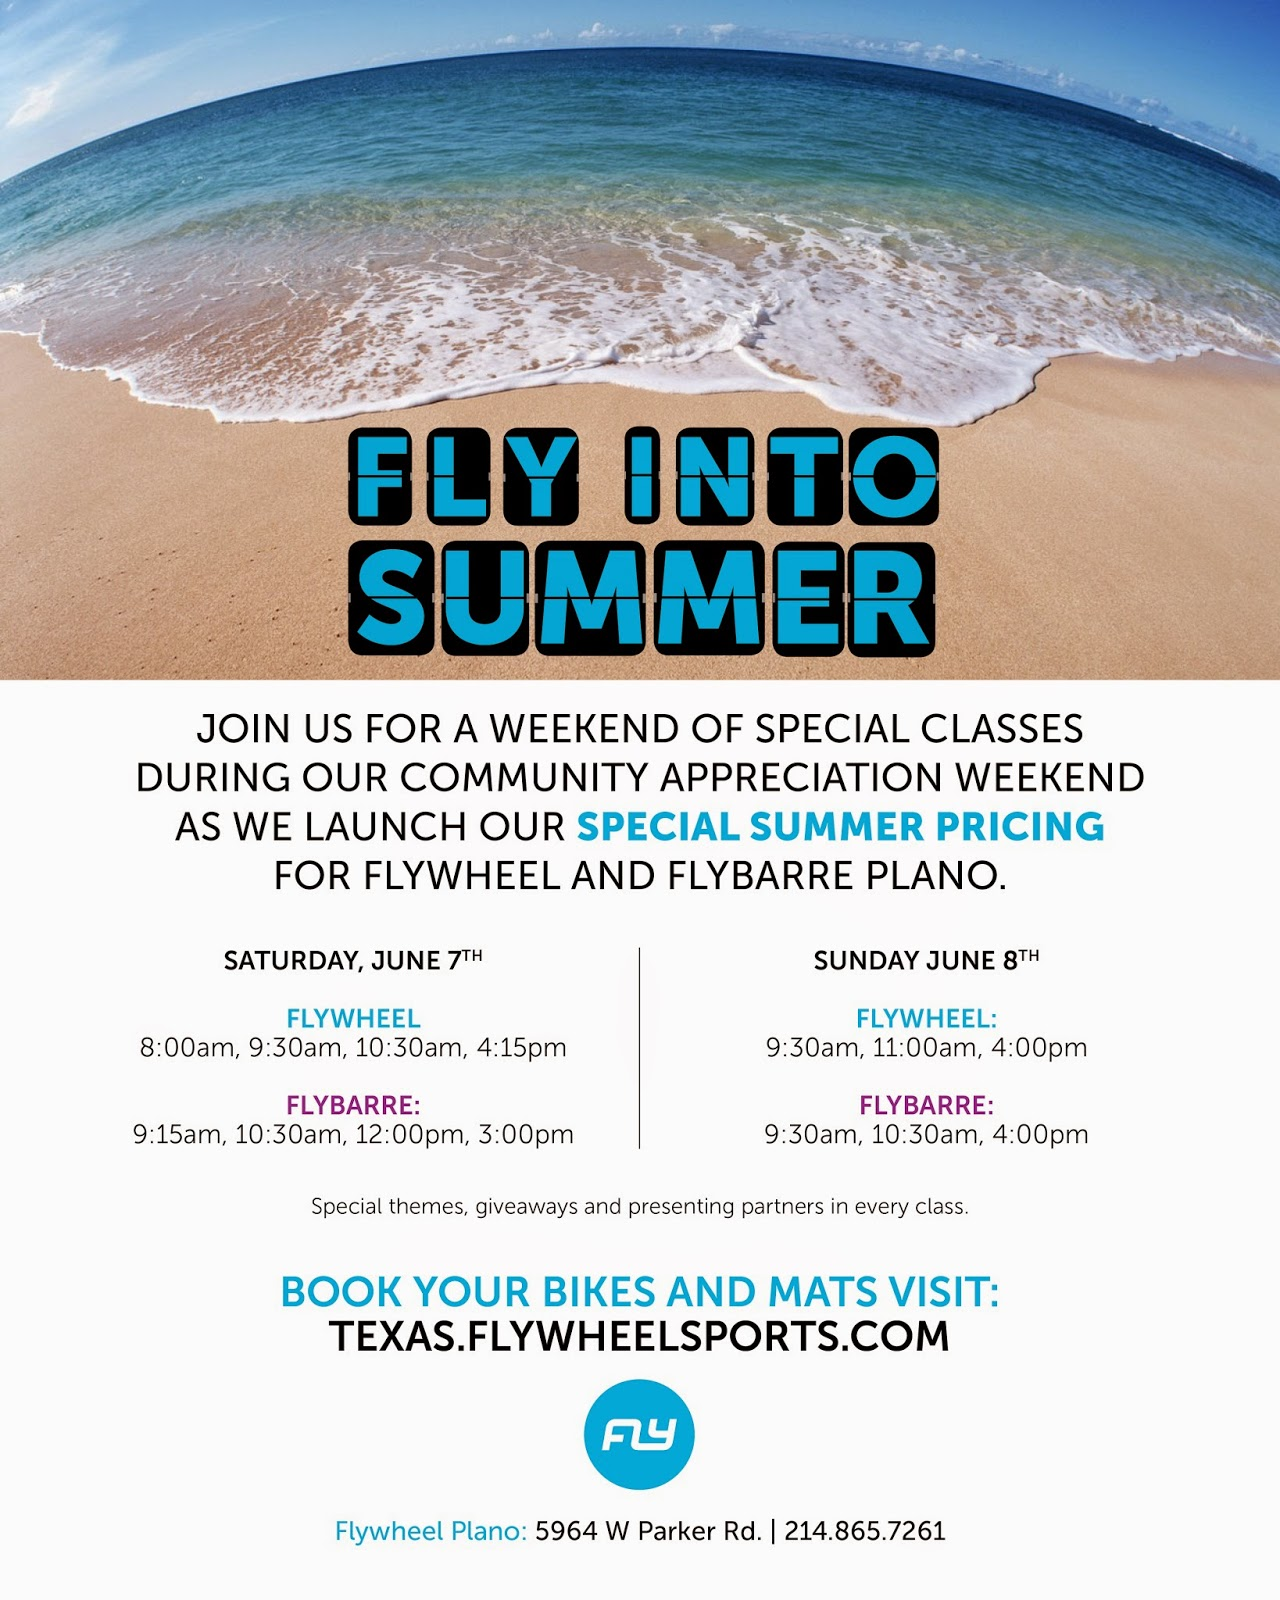 FlyWheel Plano Summer Special Classes